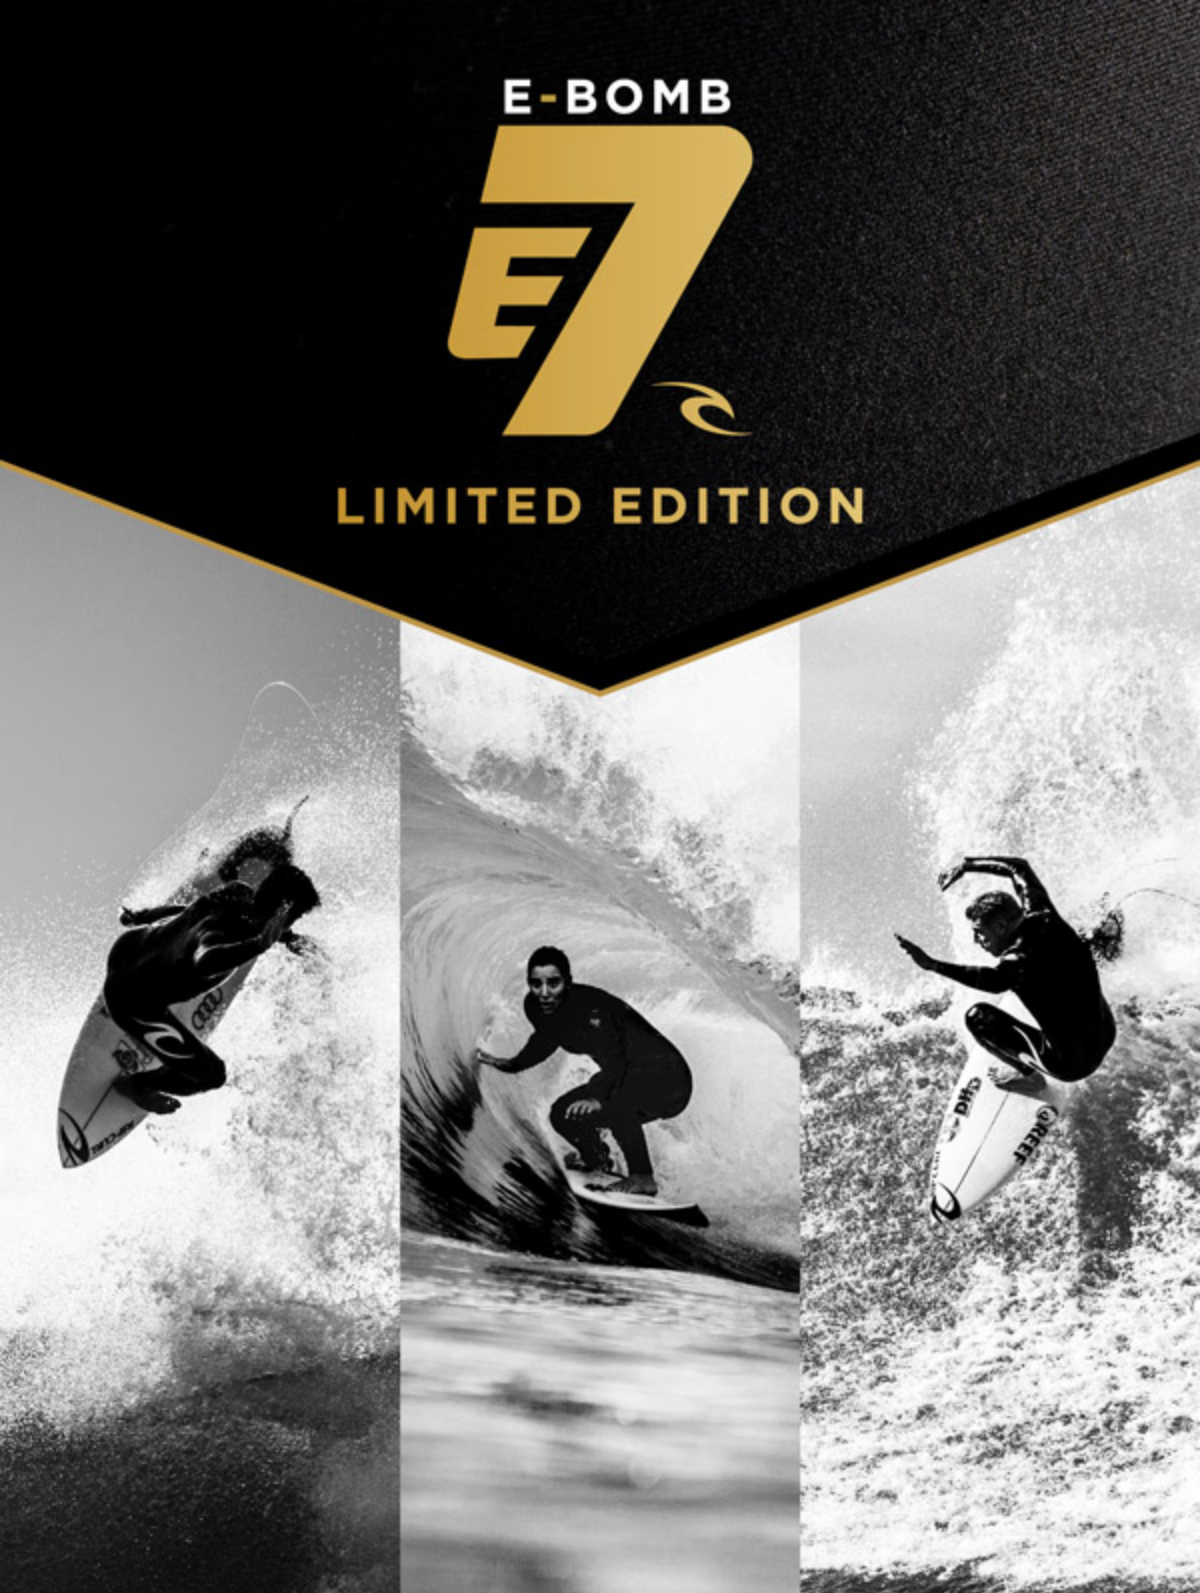 Just in: The E-Bomb E7 wetsuit by Rip Curl  | Is this the ultimate performance wetsuit?